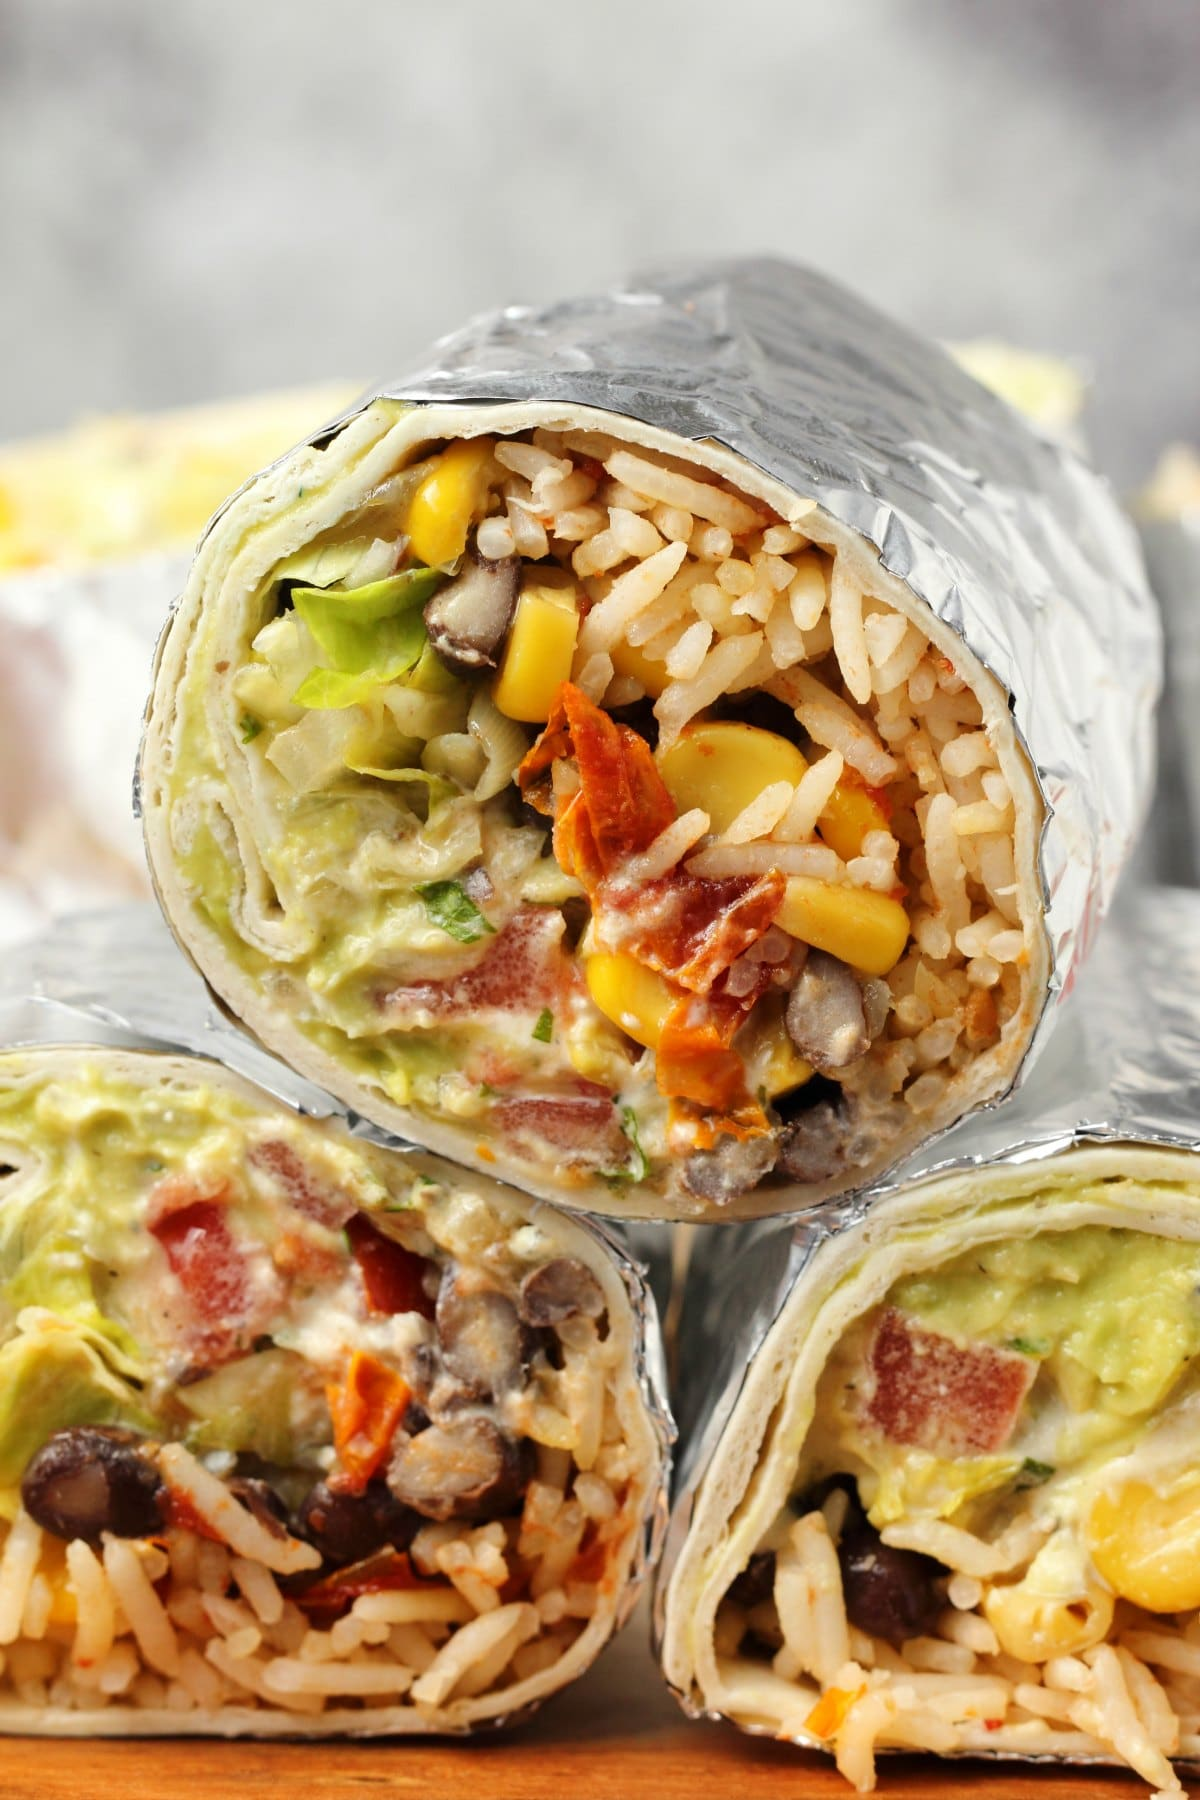 Vegan burrito stuffed with rice, black beans and corn, vegan sour cream and guacamole.